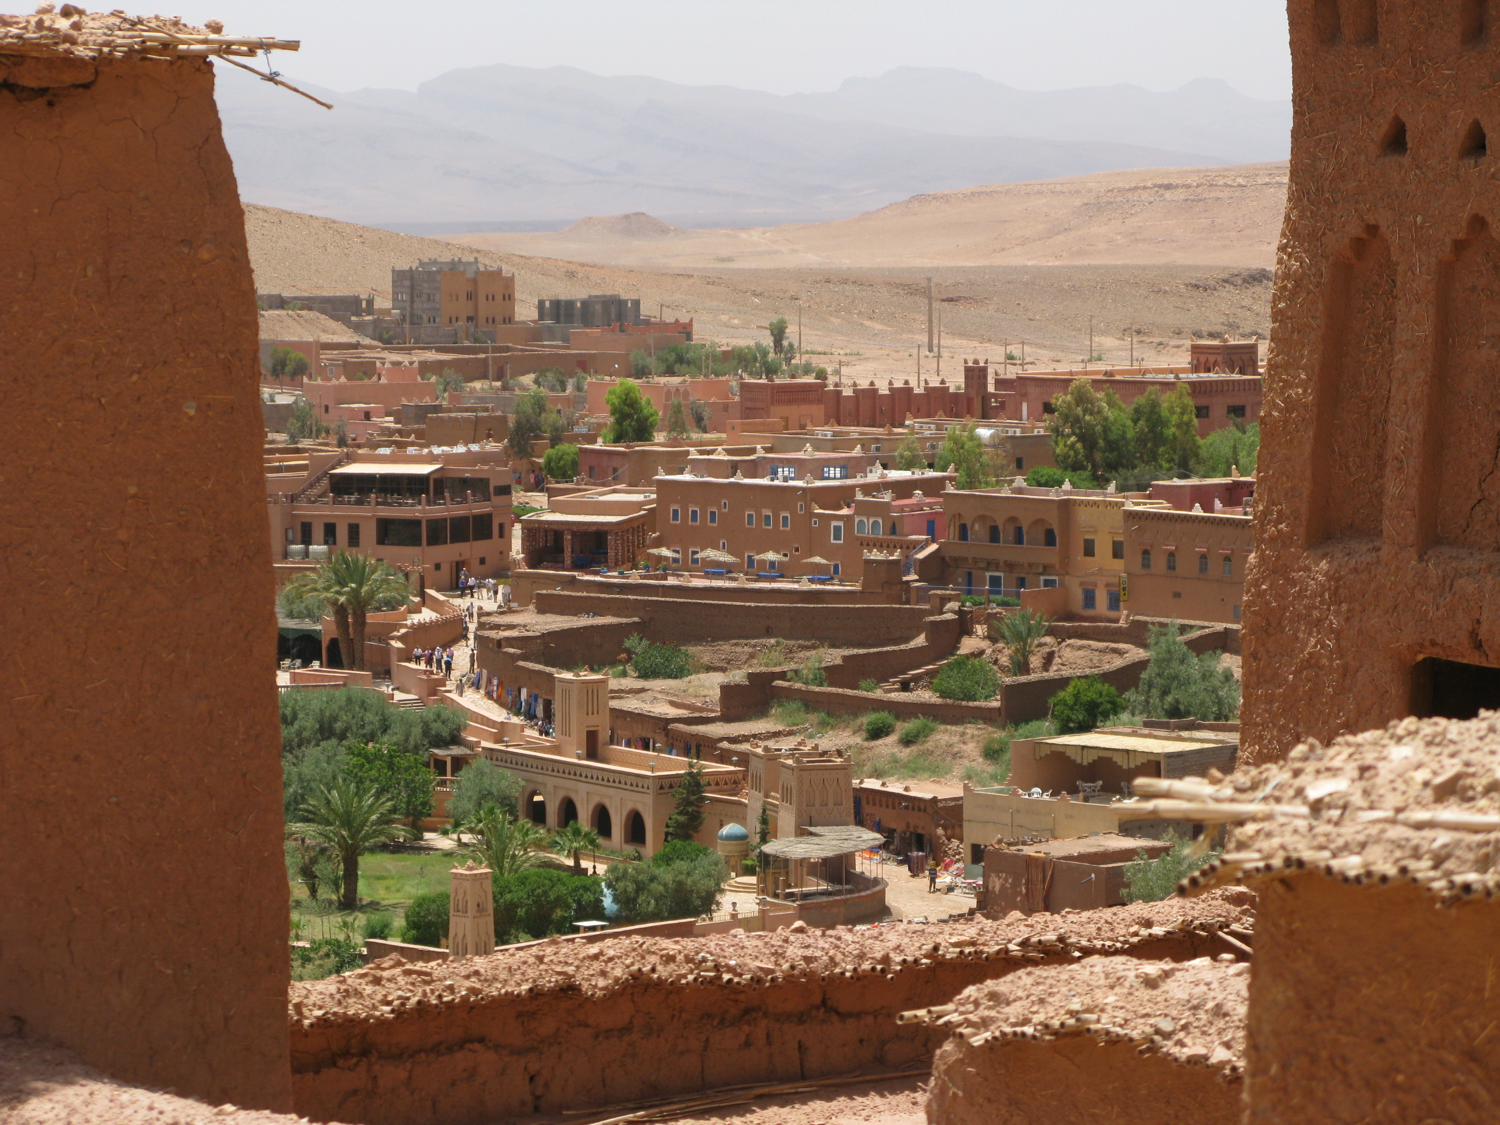 Looking from the old to the new town, Ait-Bbenhaddou